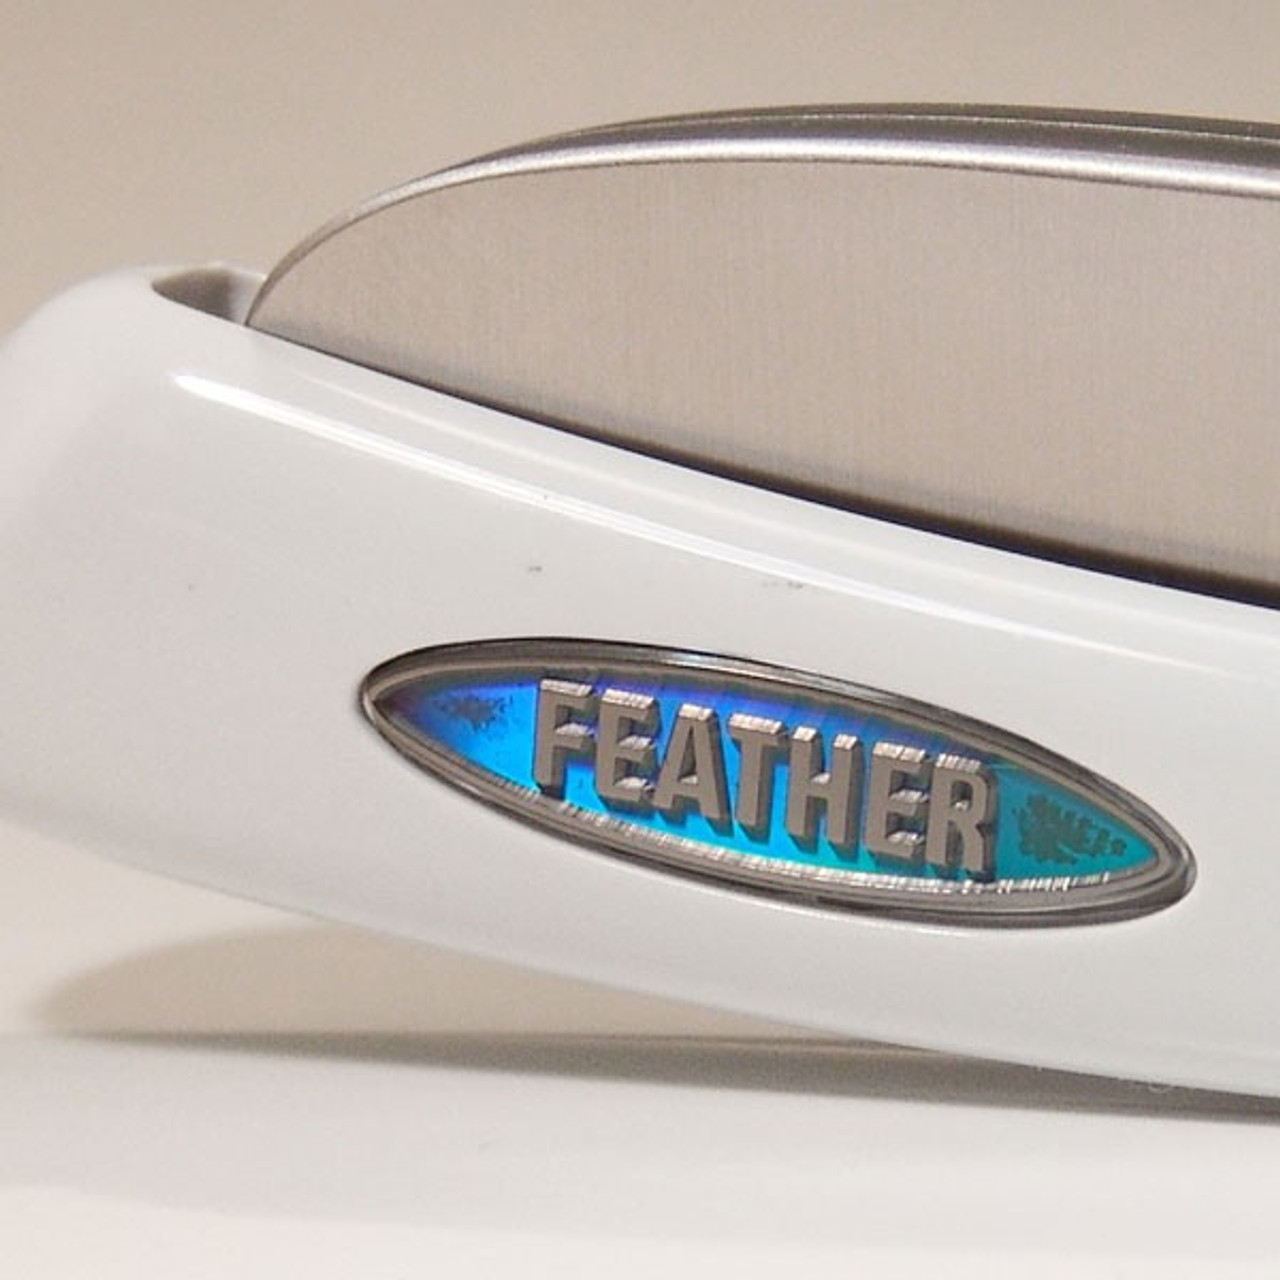 Genuine Feather - High quality, Japanese tools